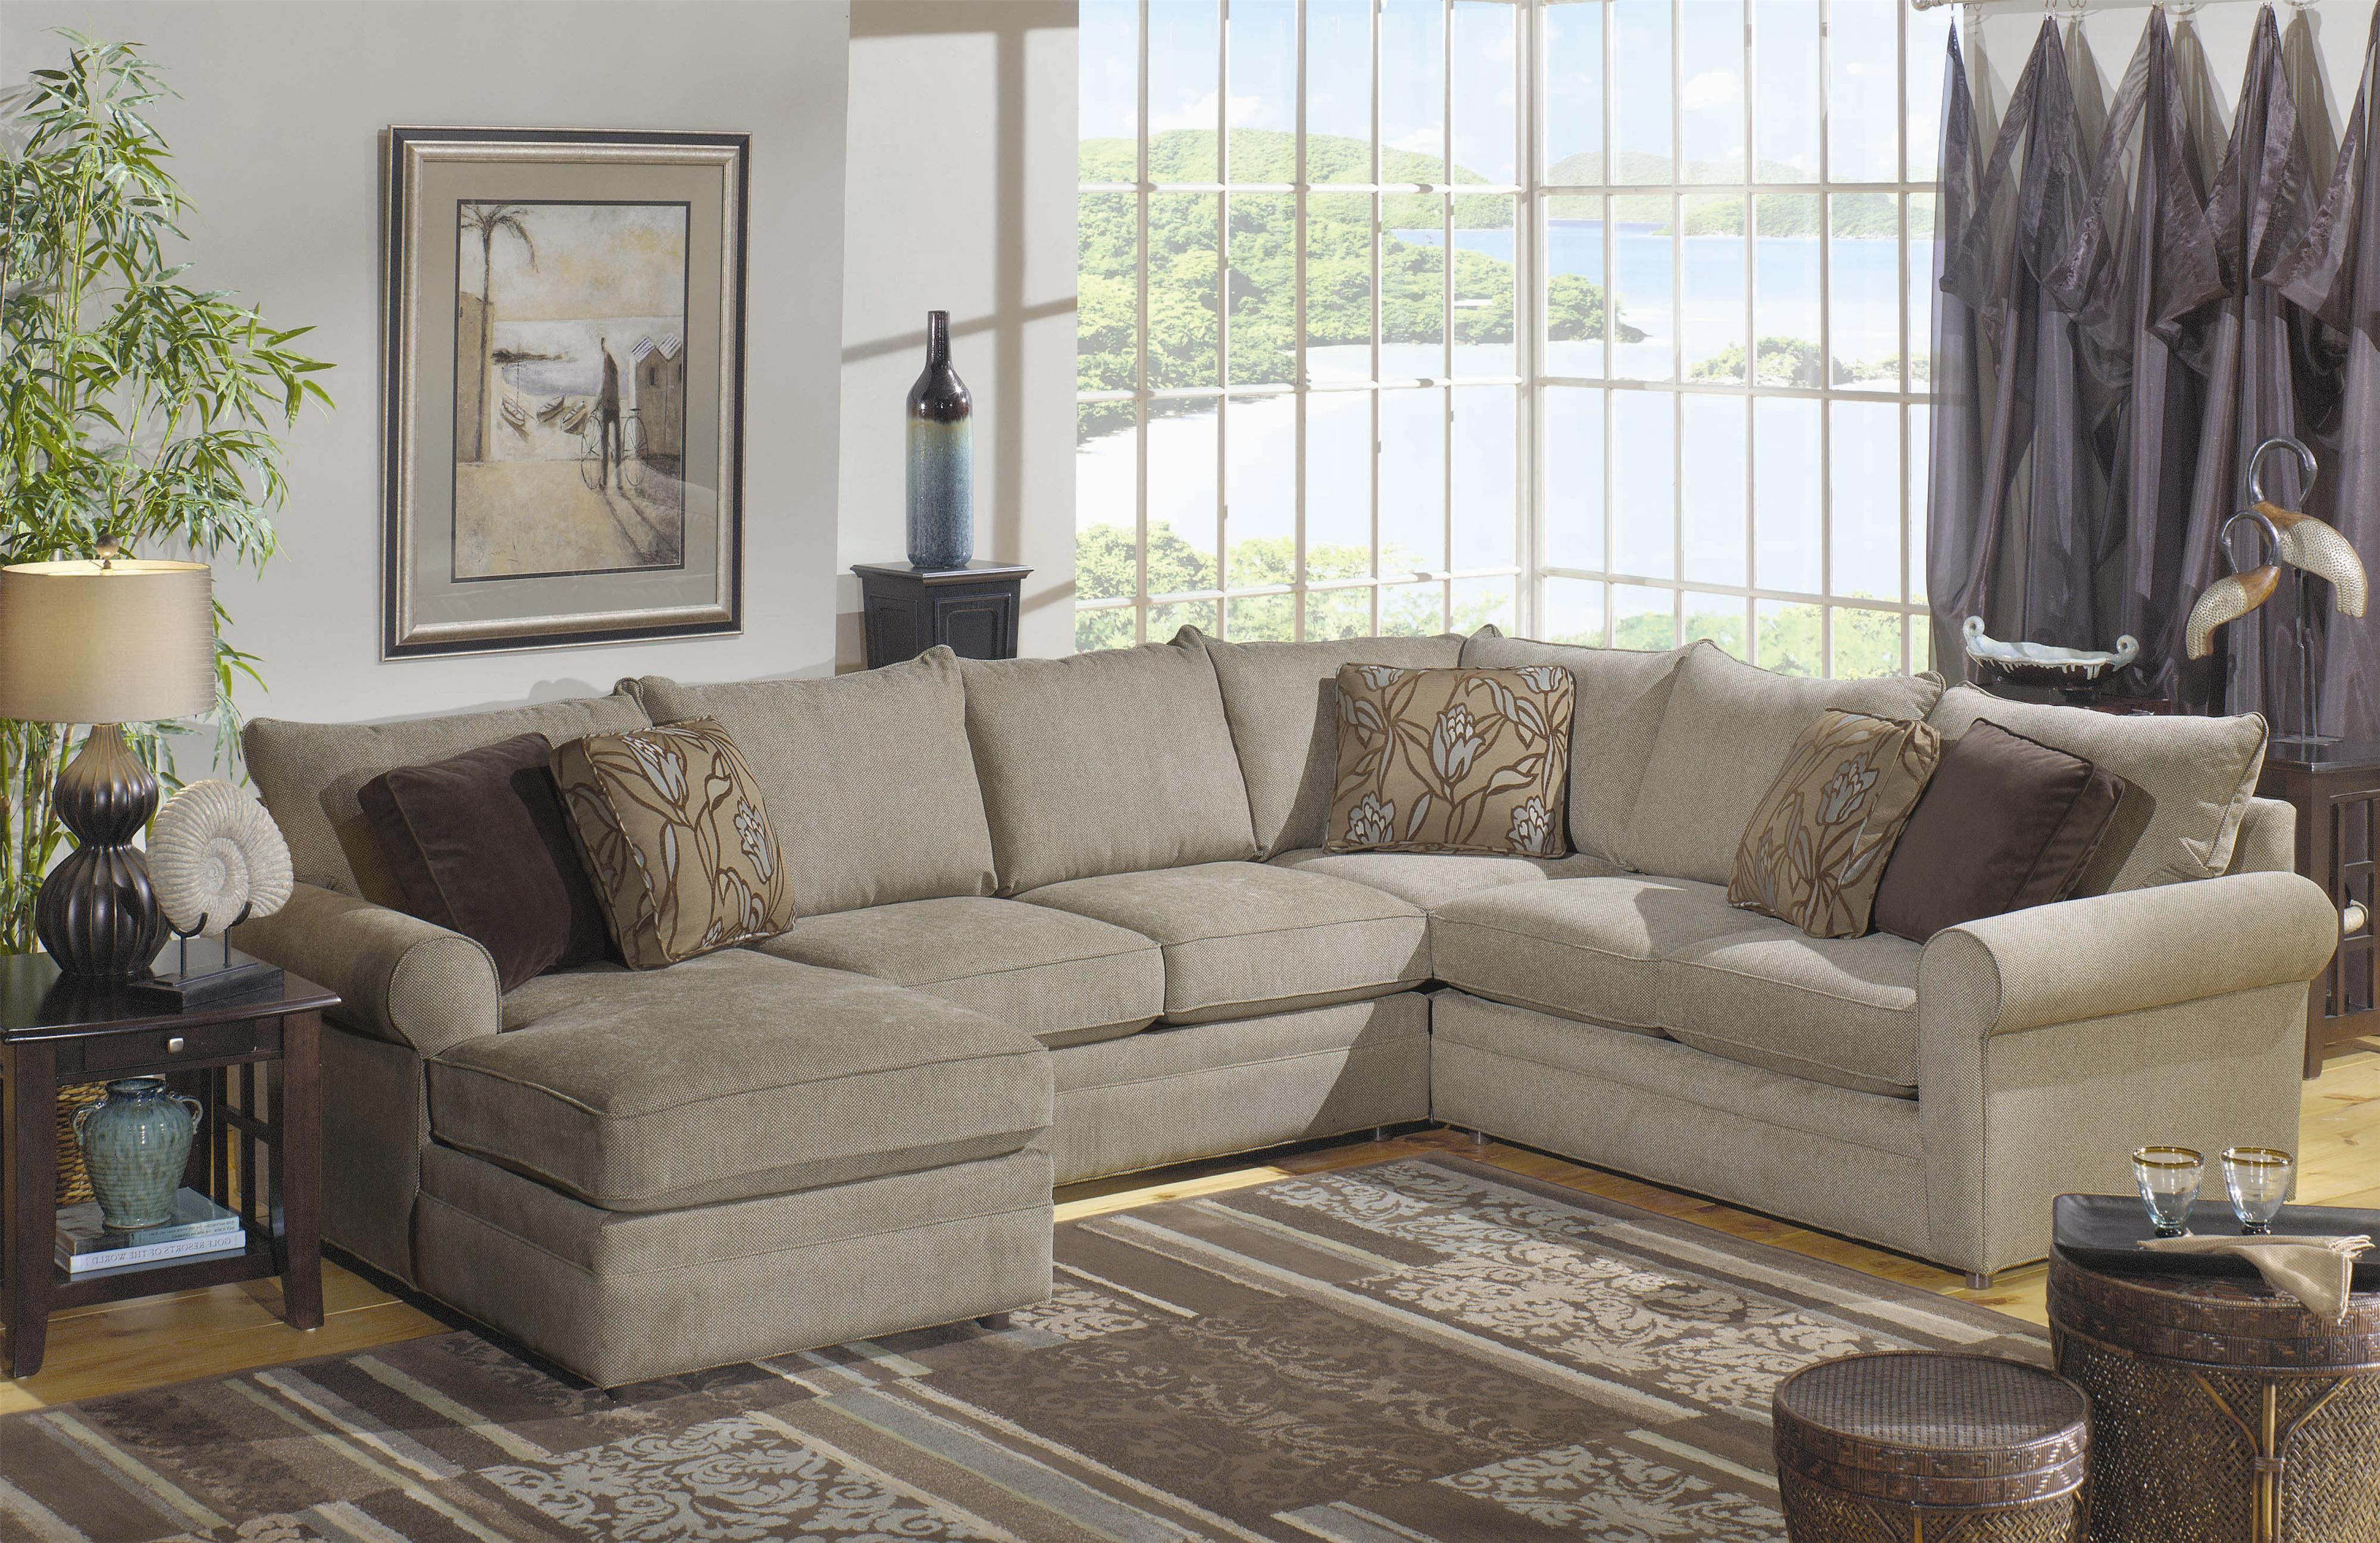 Hickory Craft 7748 Sectional Sofa With Left Side Chaise   Godby Home  Furnishings   Sofa Sectional Noblesville, Carmel, Avon, Indianapolis,  Indiana